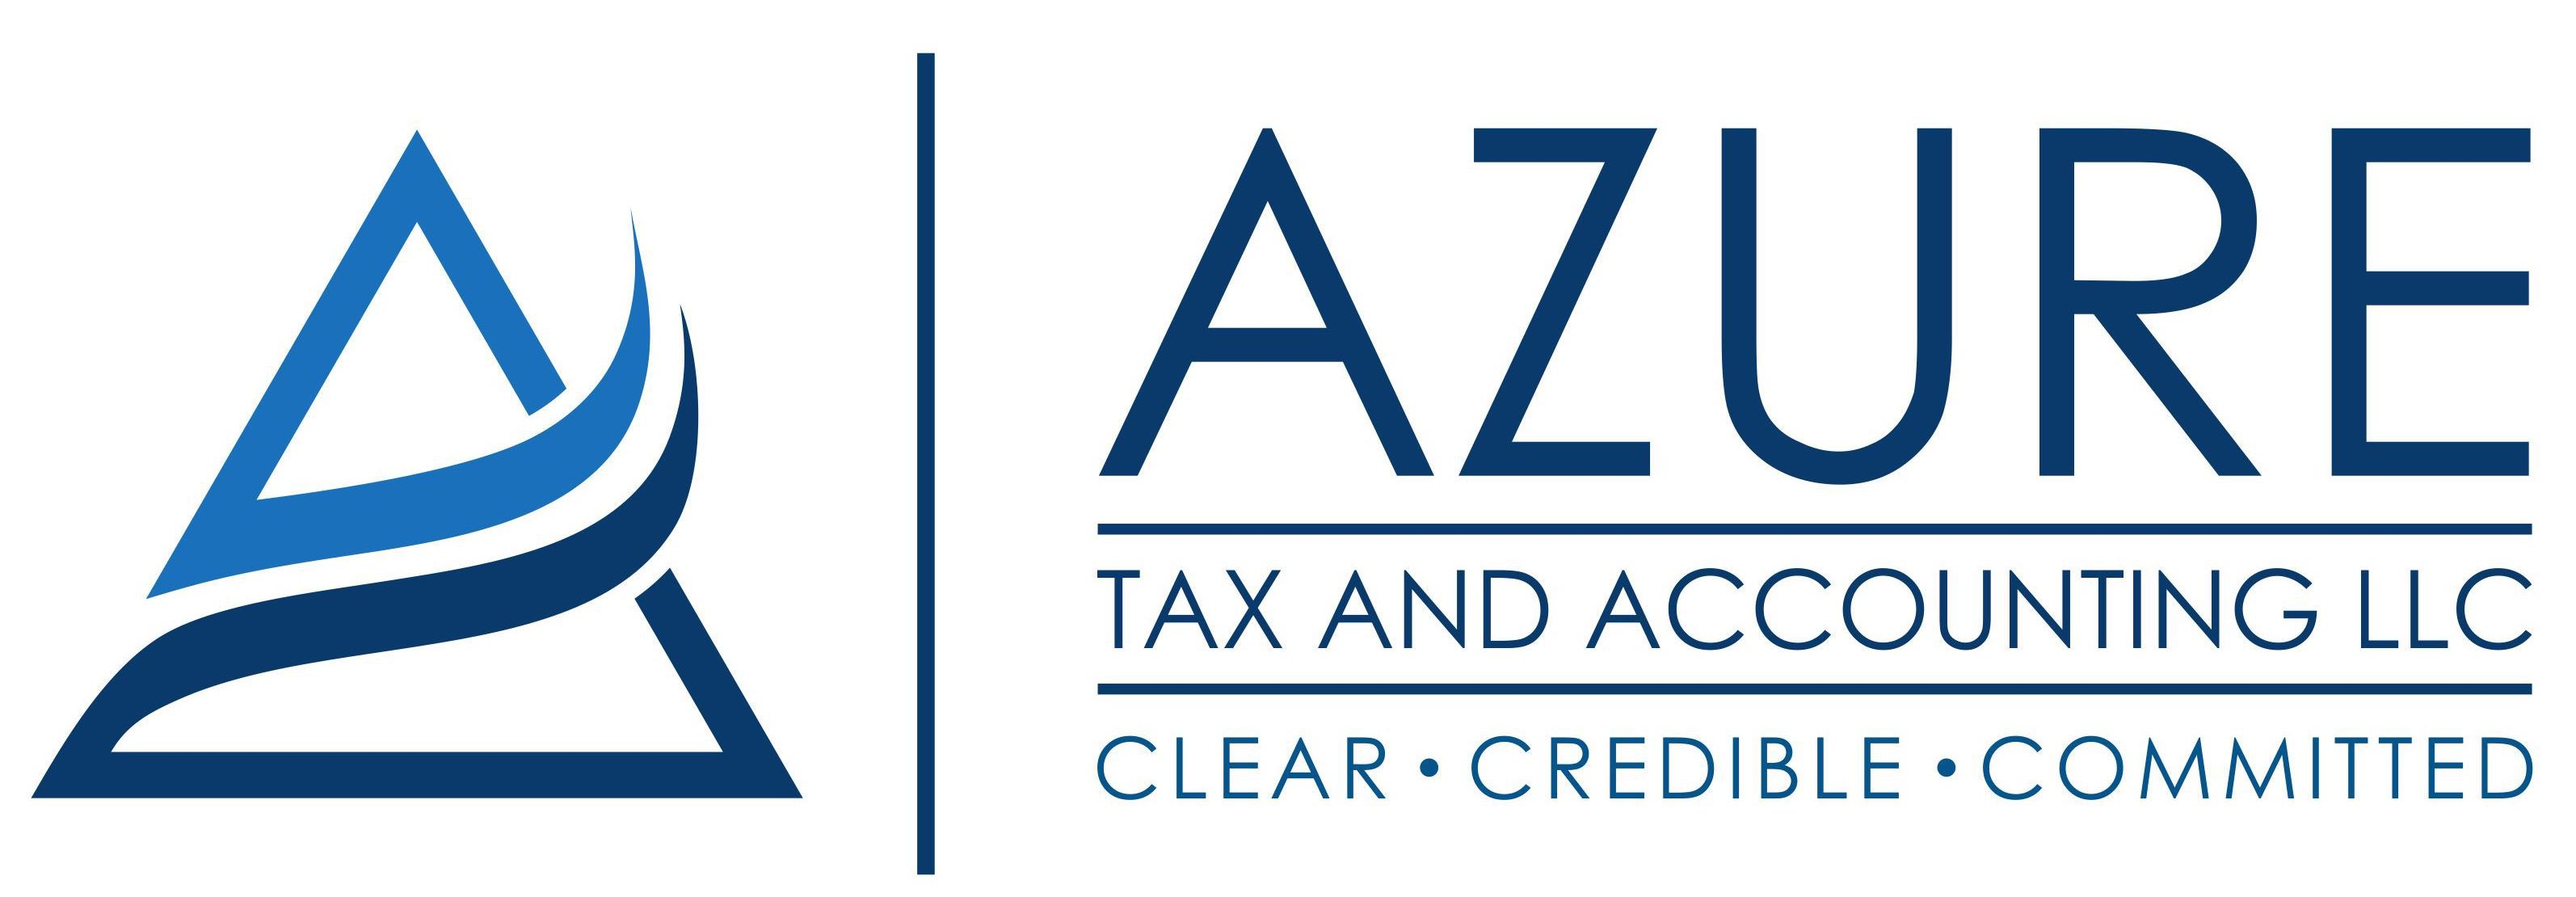 Azure Tax and Accounting LLC Online Payment